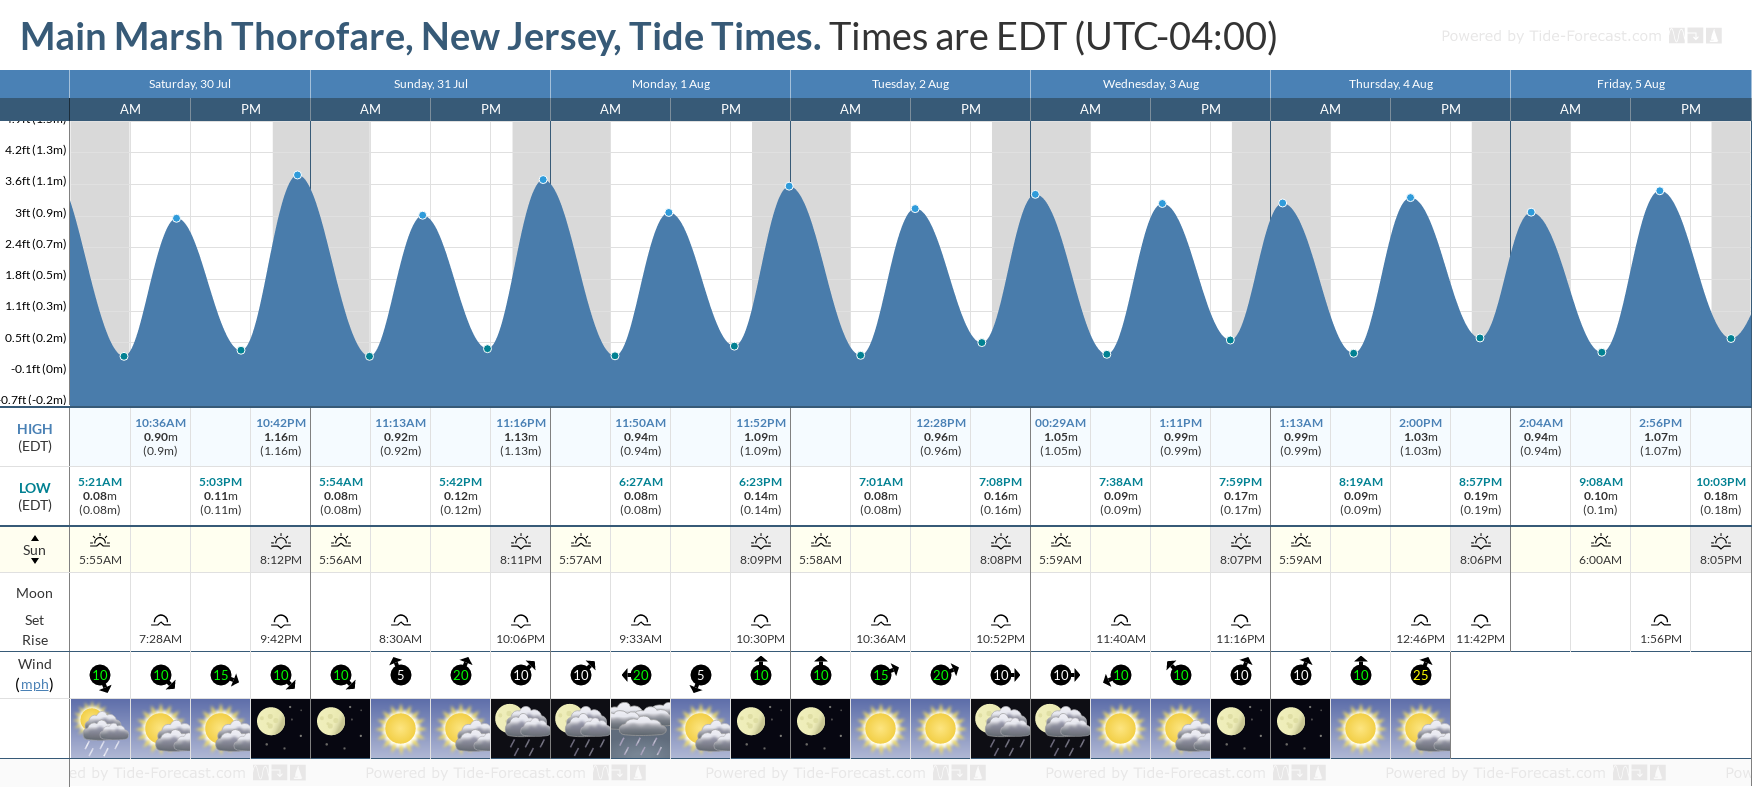 Main Marsh Thorofare, New Jersey Tide Chart including high and low tide tide times for the next 7 days